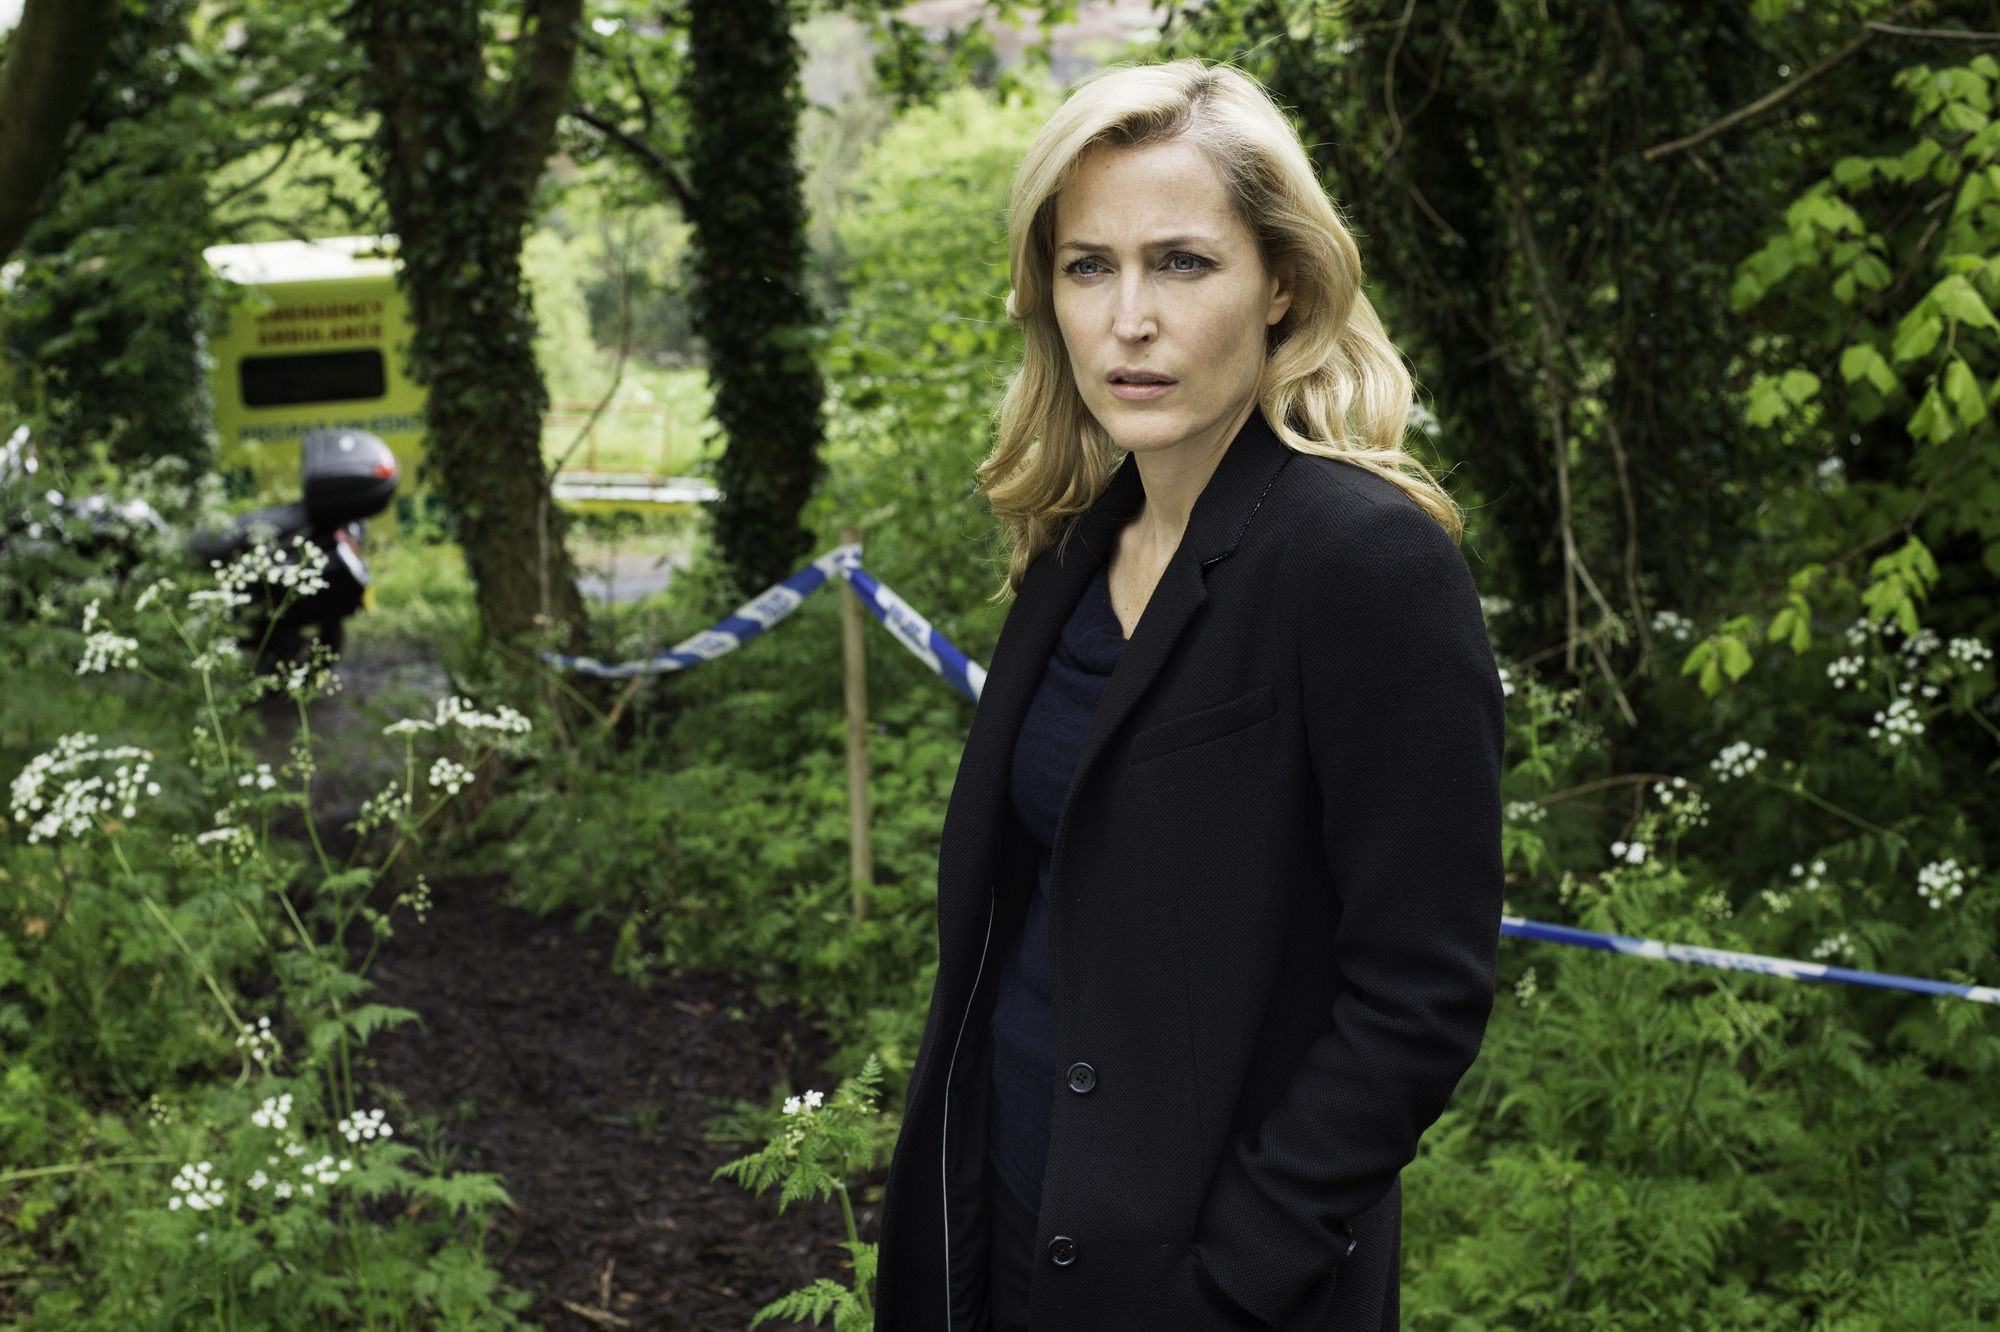 The Fall is back – here's what's happened so far as season 2 begins